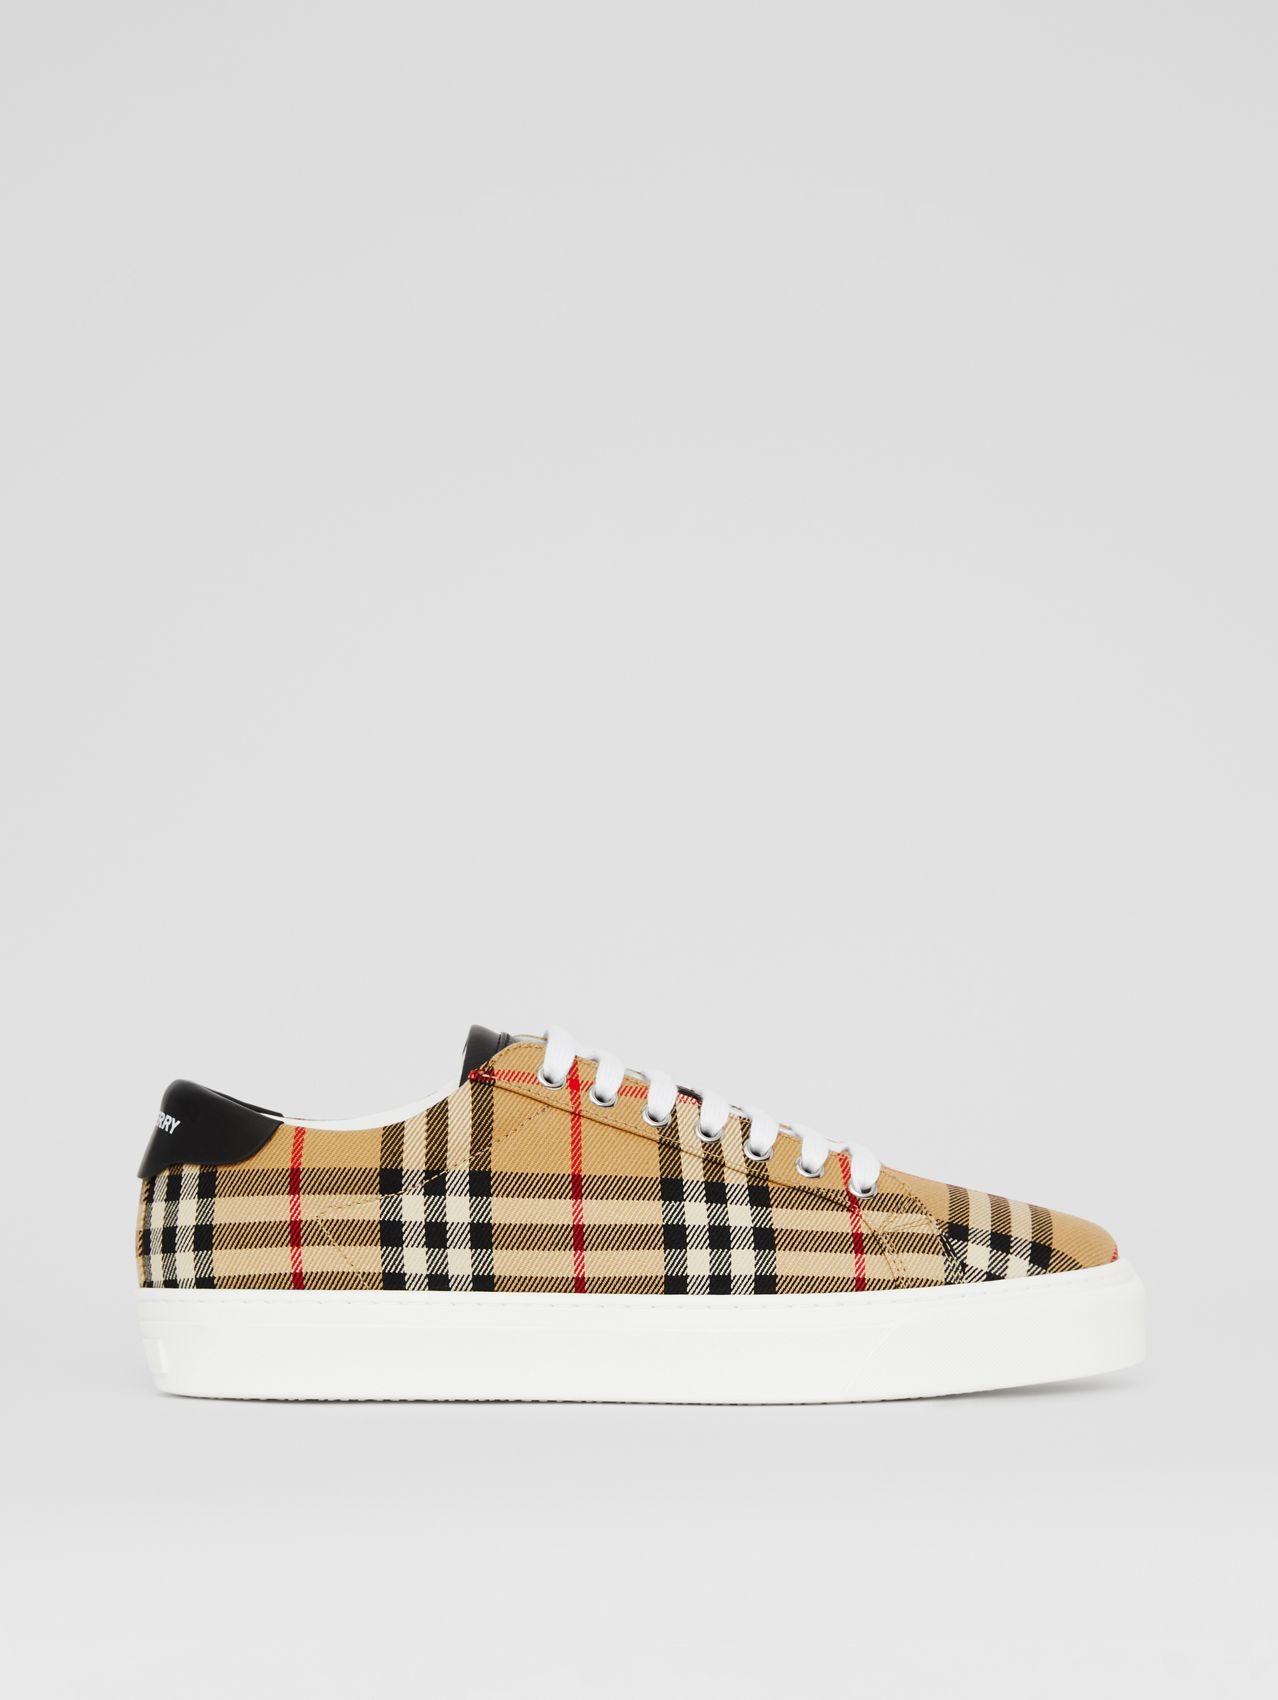 Bio-based Sole Vintage Check and Leather Sneakers in Archive Beige